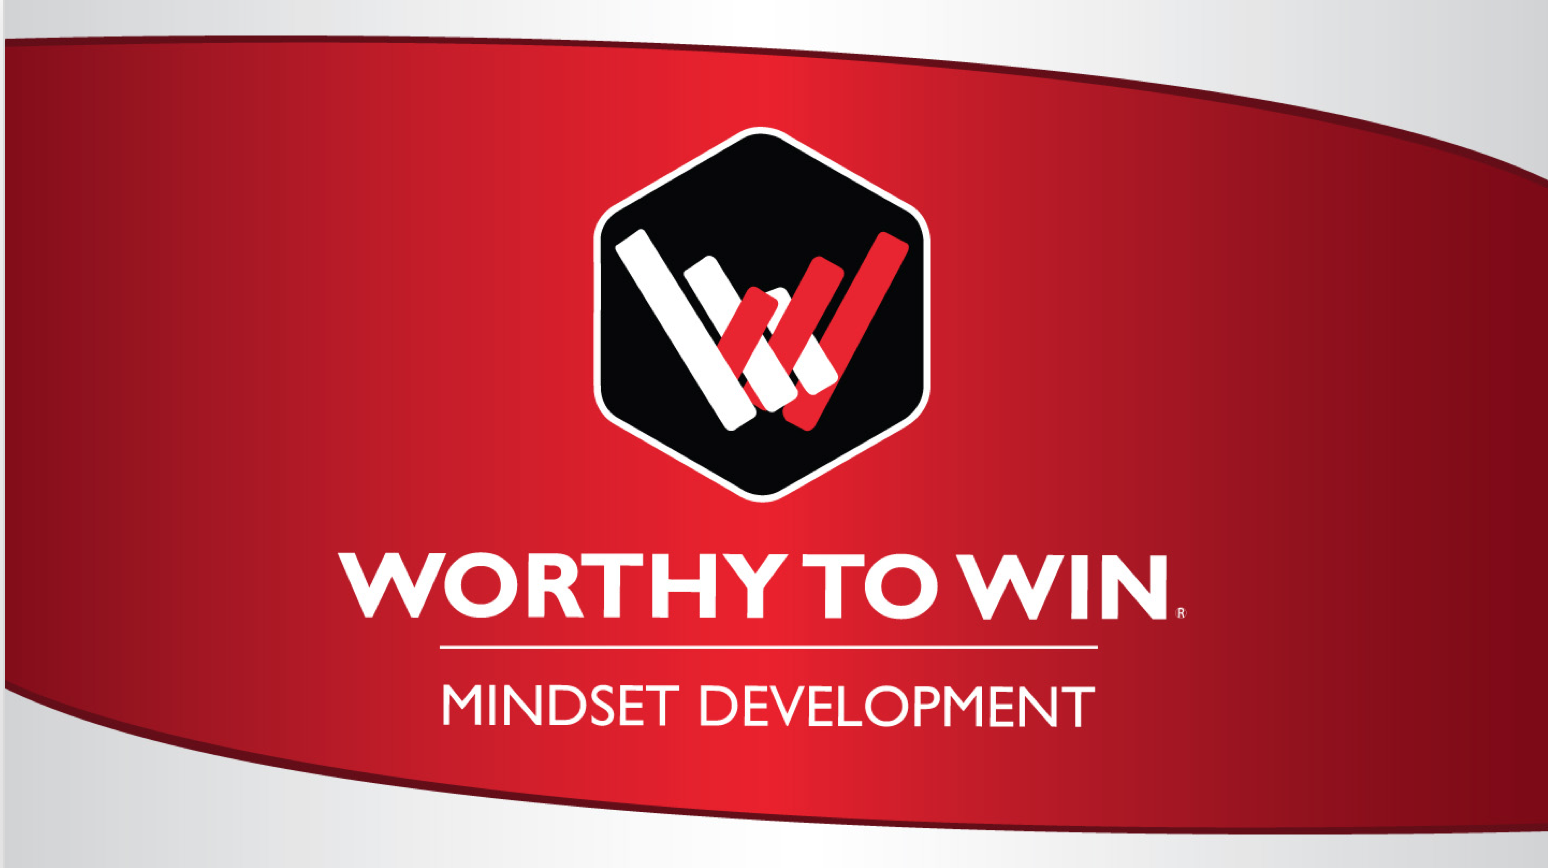 Worthy to Win: Mindset Development